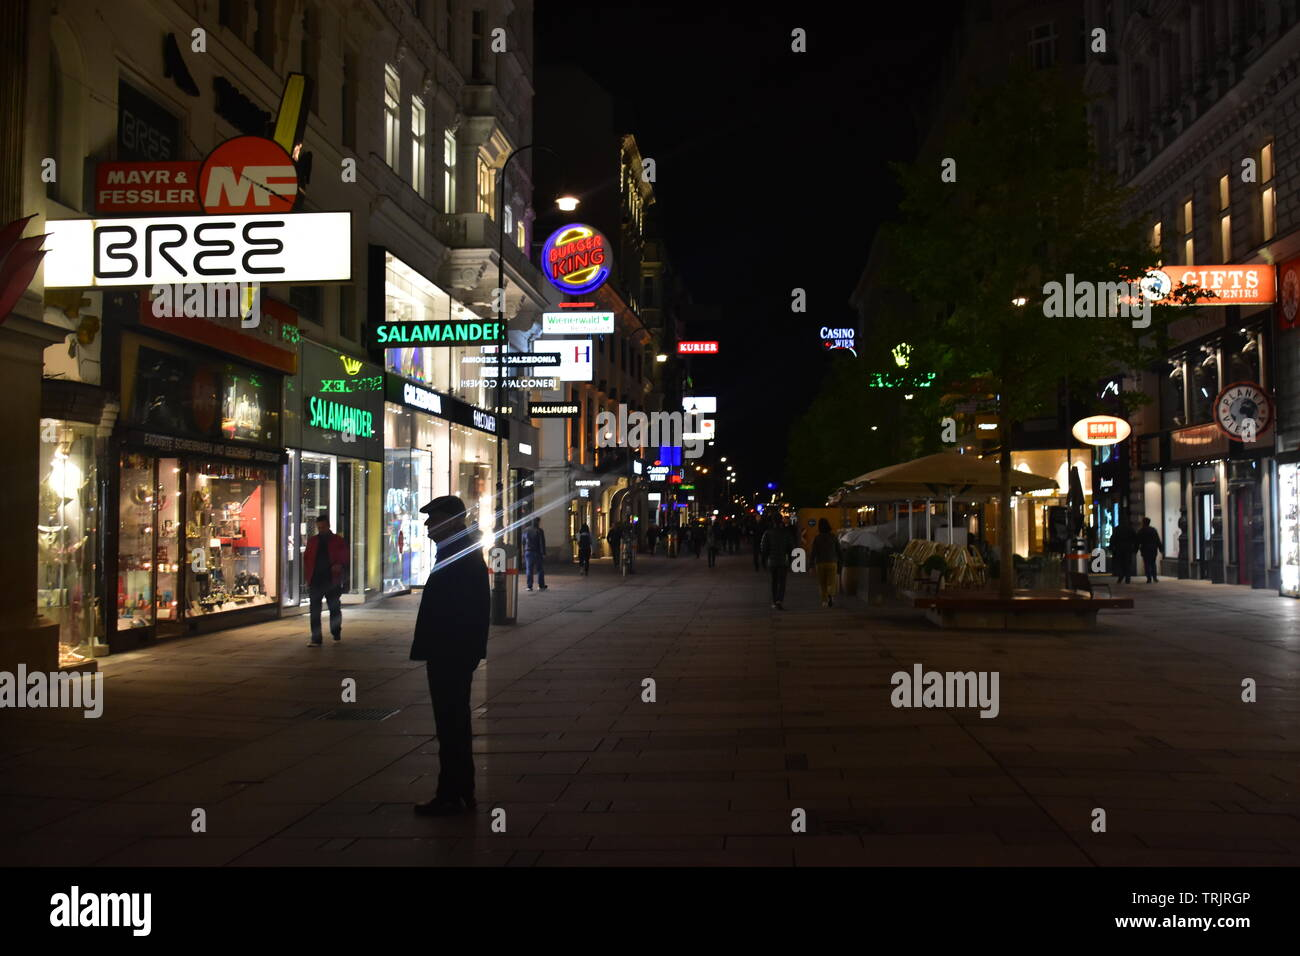 Photo of Annagasse street with people walking around in the inner city of Vienna during a rainy night - Stock Image